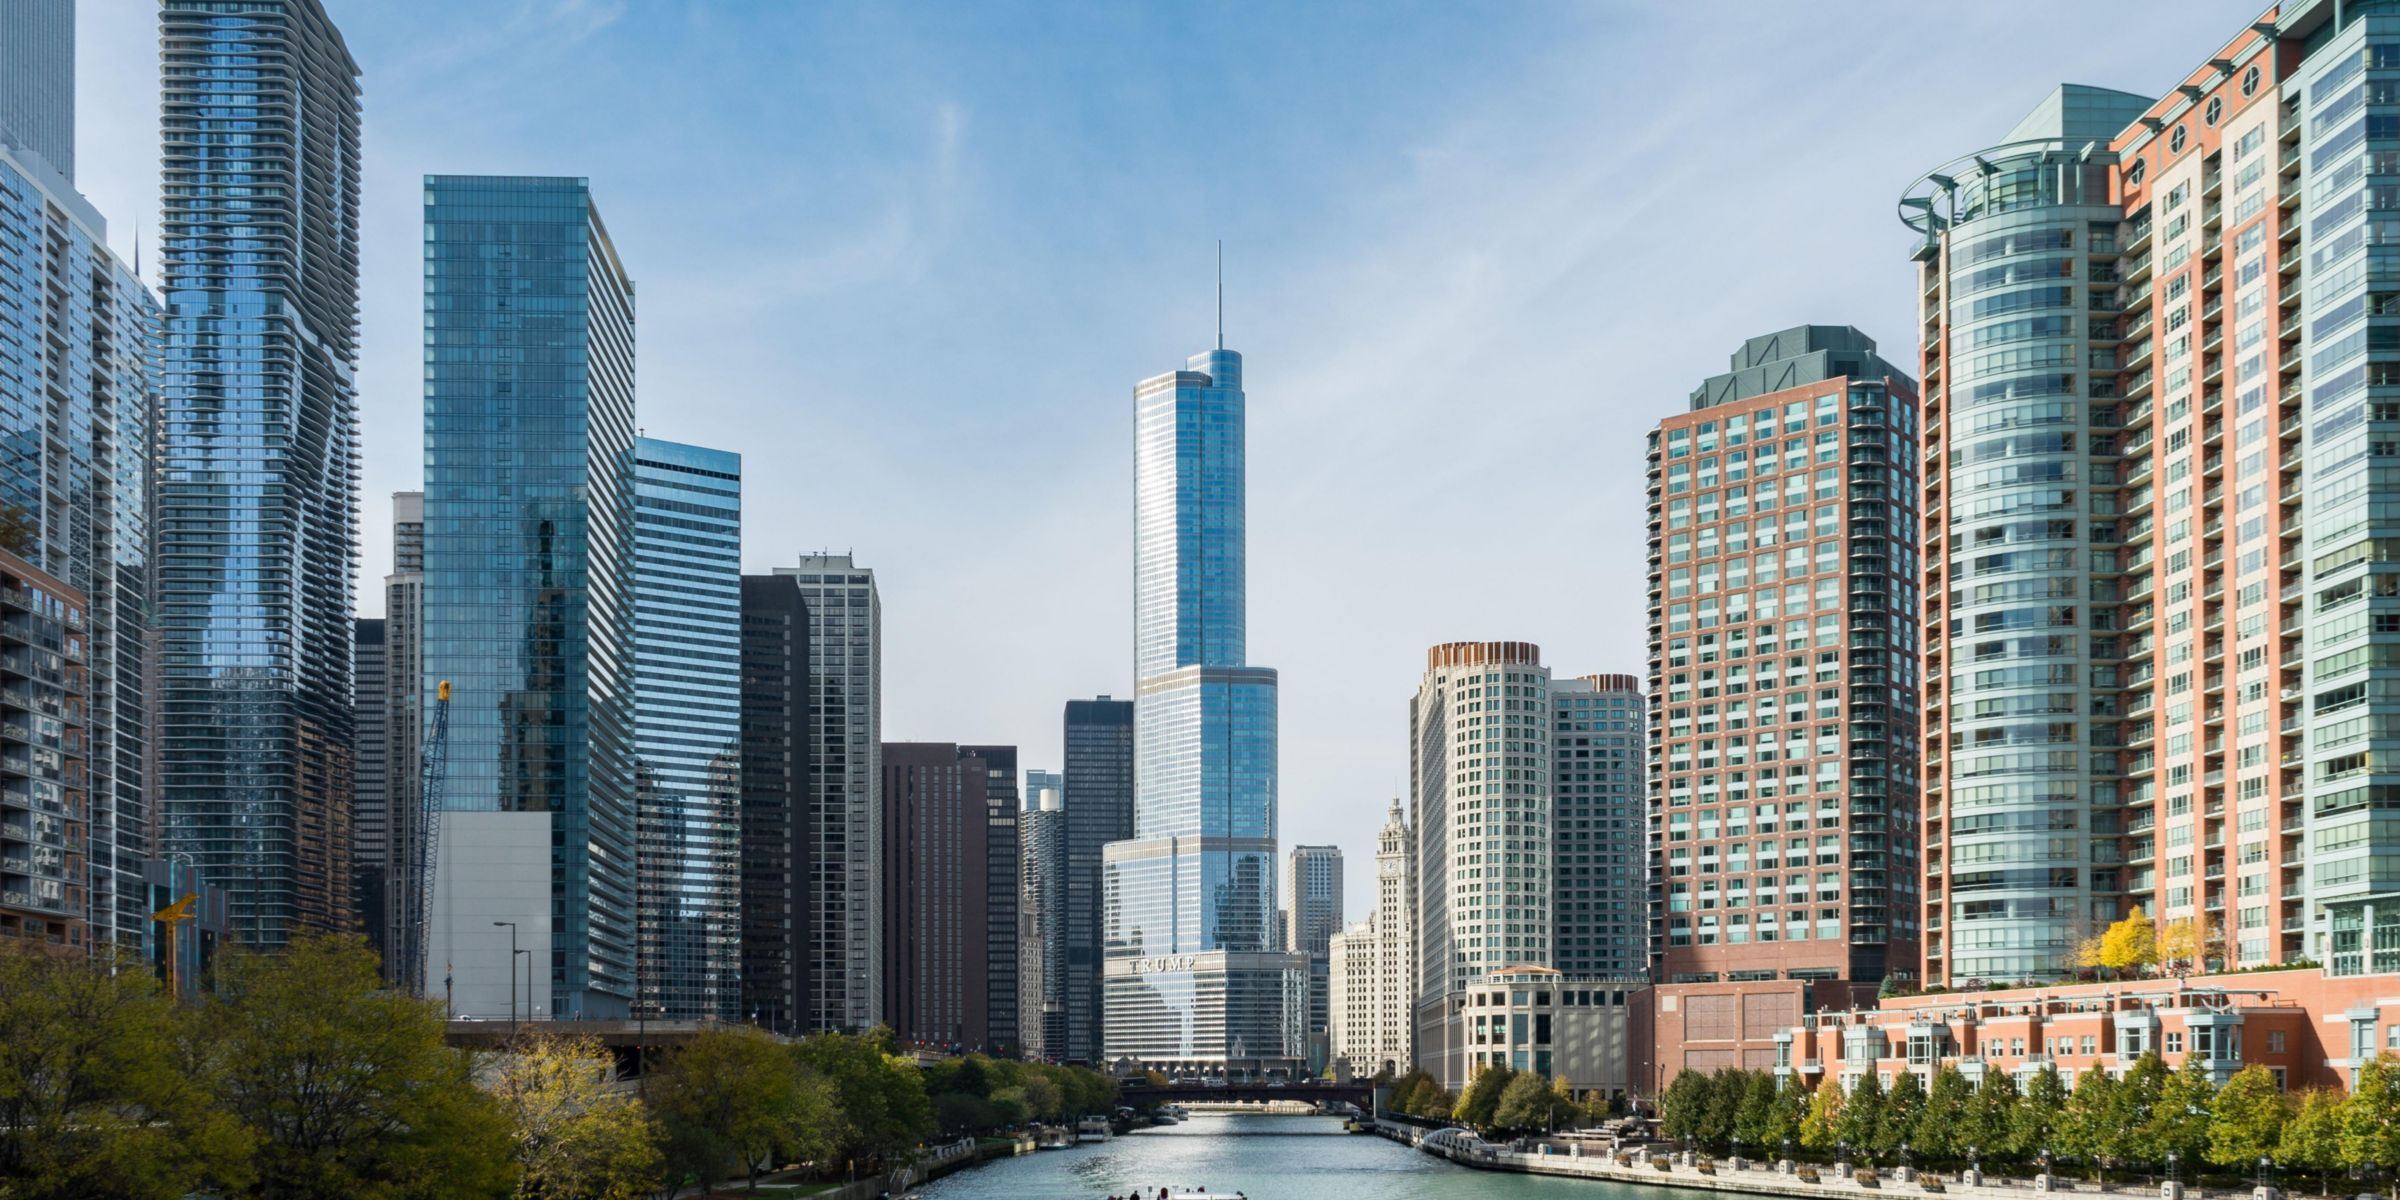 intercontinental chicago magnificent mile chicago イリノイ